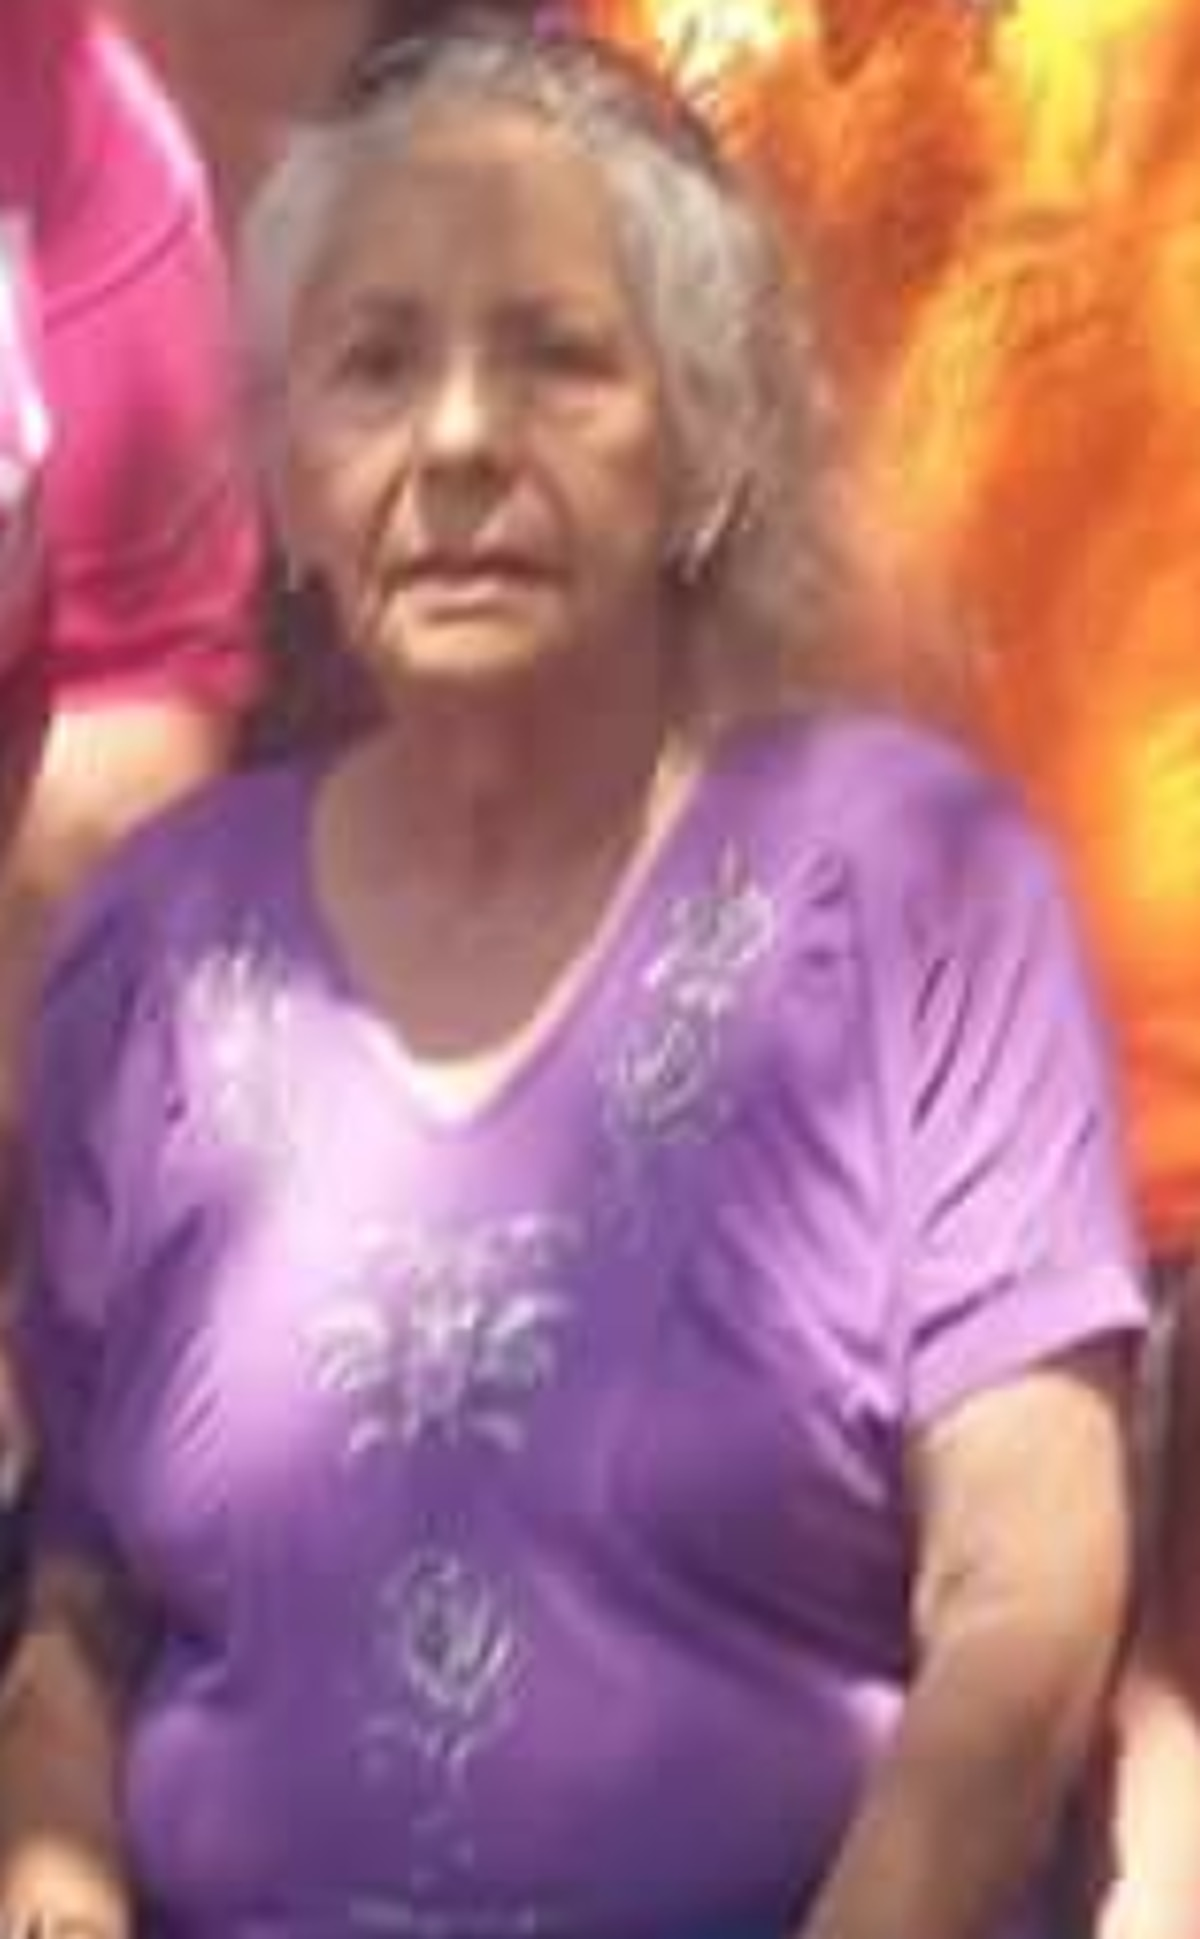 Police search for woman, 73, who went missing in downtown